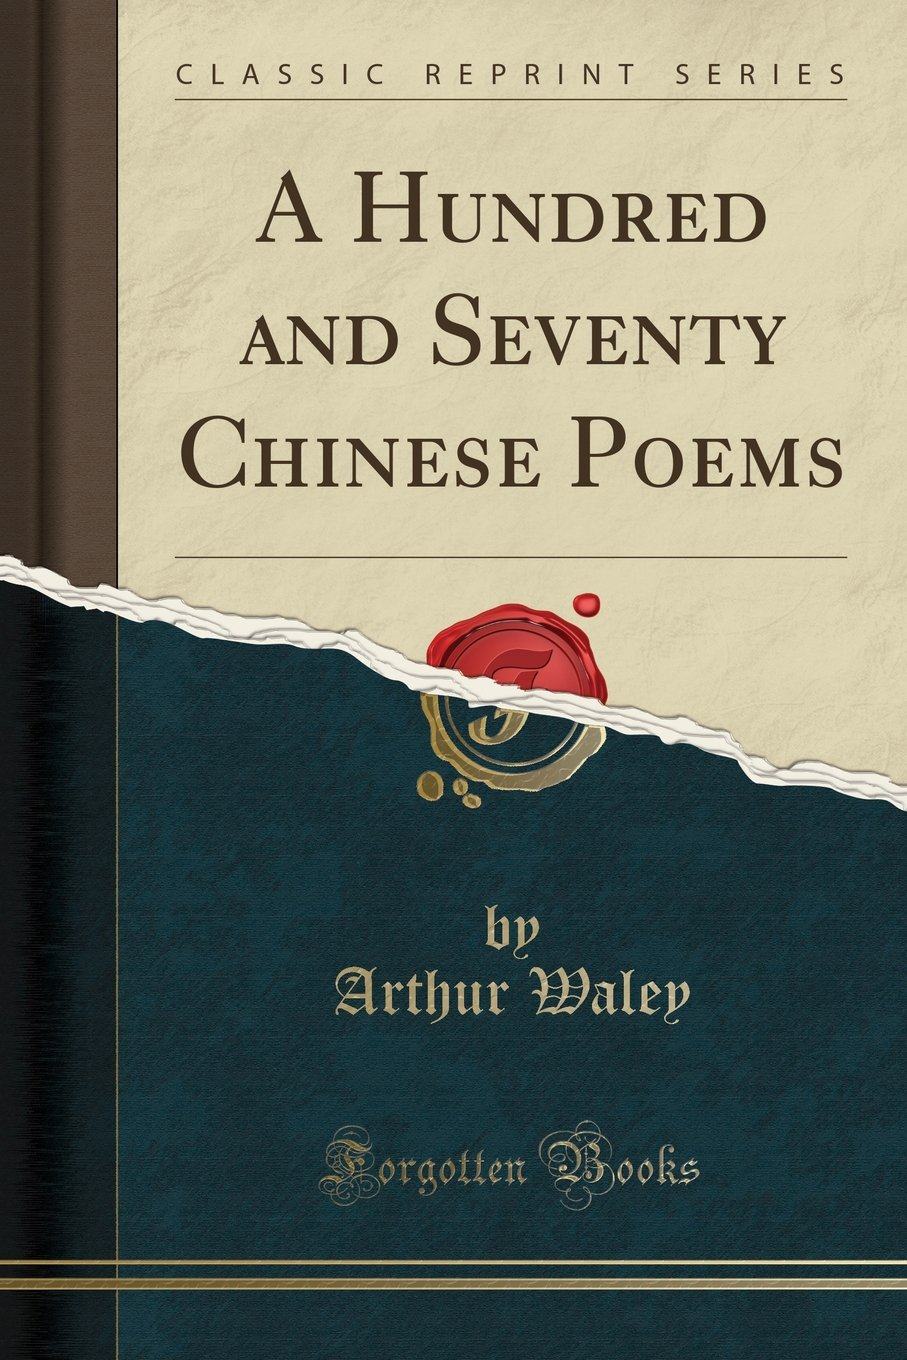 A Hundred and Seventy Chinese Poems (Classic Reprint): Arthur Waley:  9781330436394: Amazon.com: Books